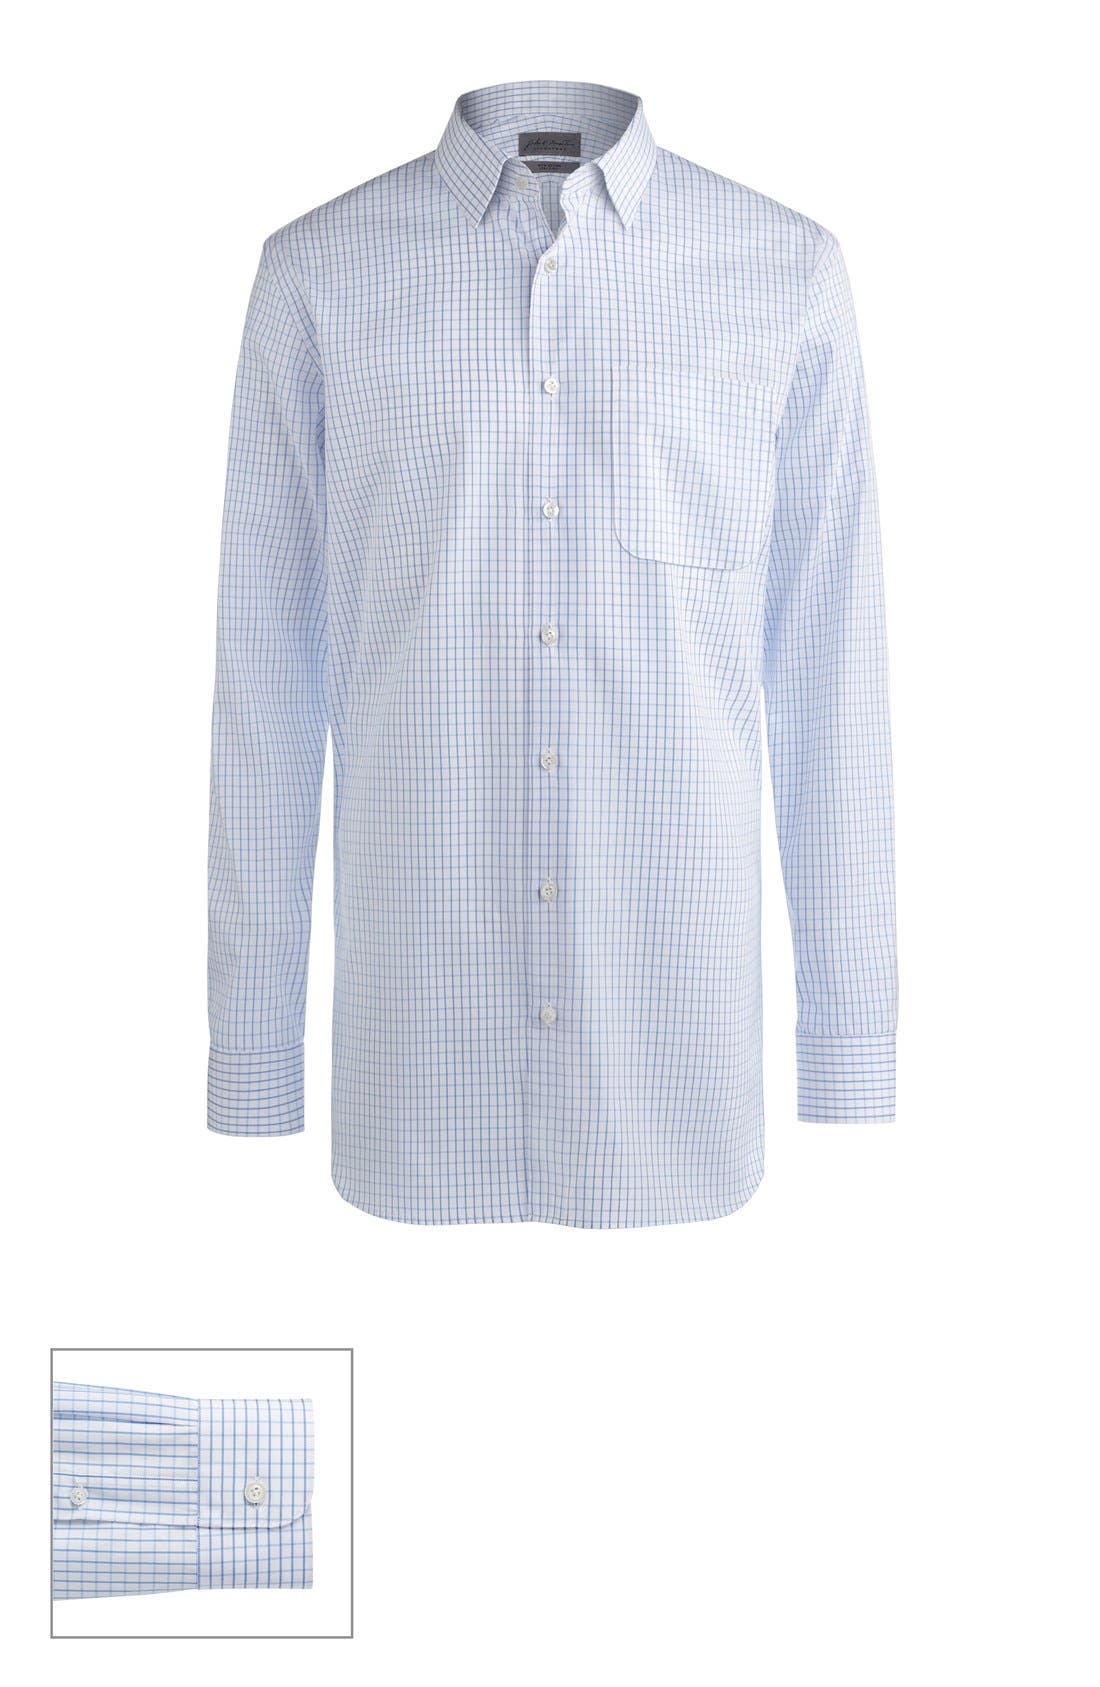 Made to Measure Extra Trim Fit Straight Collar Dobby Plaid Dress Shirt,                         Main,                         color, Blue Graphic Check